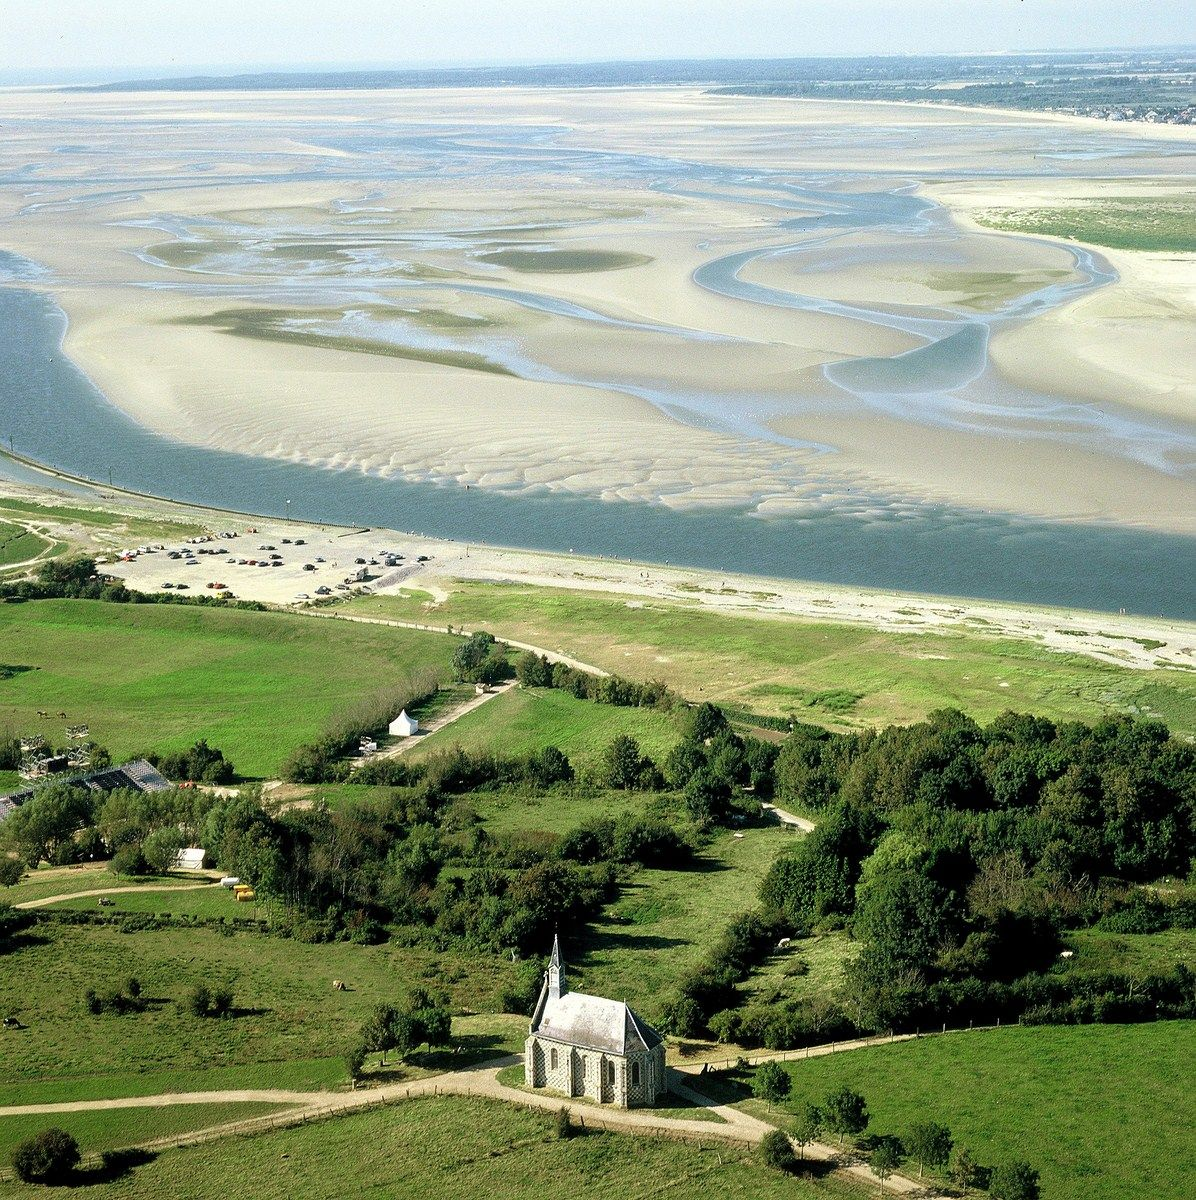 La Baie de Somme, Picardie France - Check! | Everyone`s ...